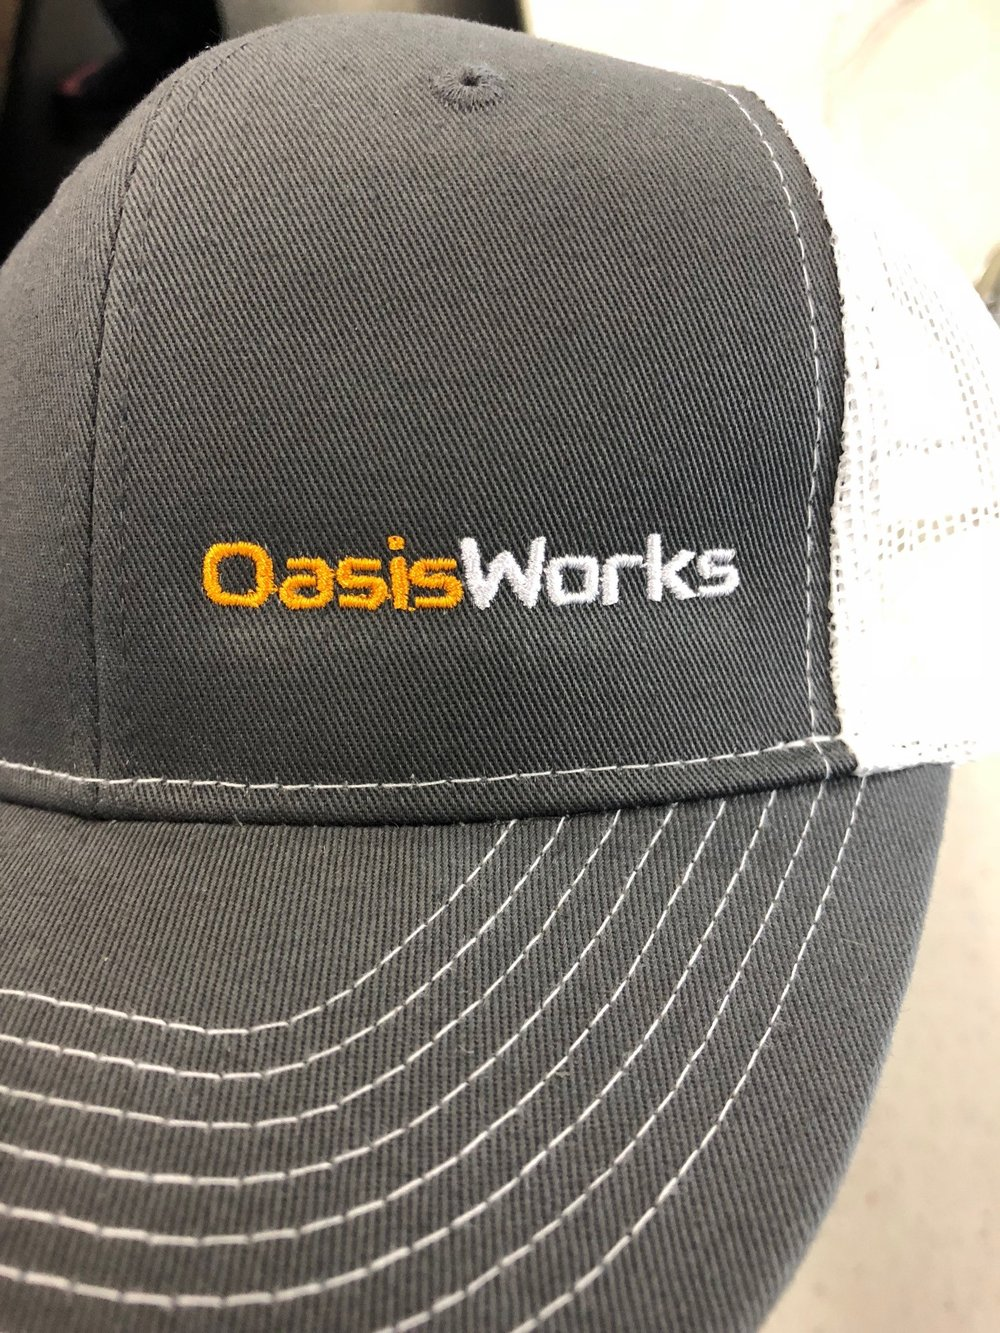 logounltd_laser_etching_embroidery_screen_printing_apparel_uniform_custom_tshirts_dye_sublimation_kirkland_bellevue_seattle_redmond_branded_merchandise_promotional_products_logo_unltd_oasisworks_tshirt_patches (1).jpg